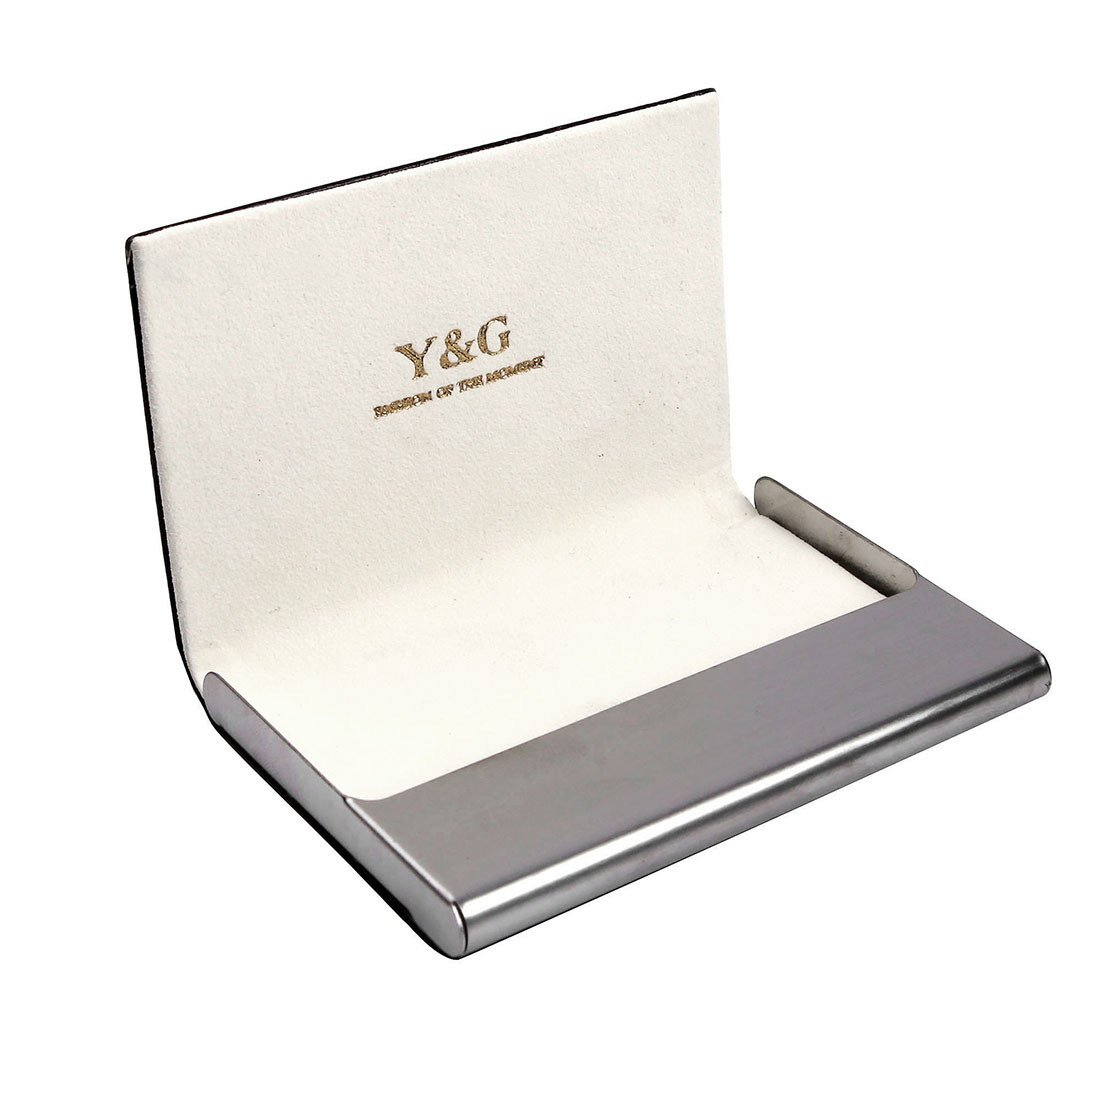 brand new 6ed7a 1a30d YDC05 Best Business Card Holder Artificial Leather Card Case Excellent  Designer By Y&G